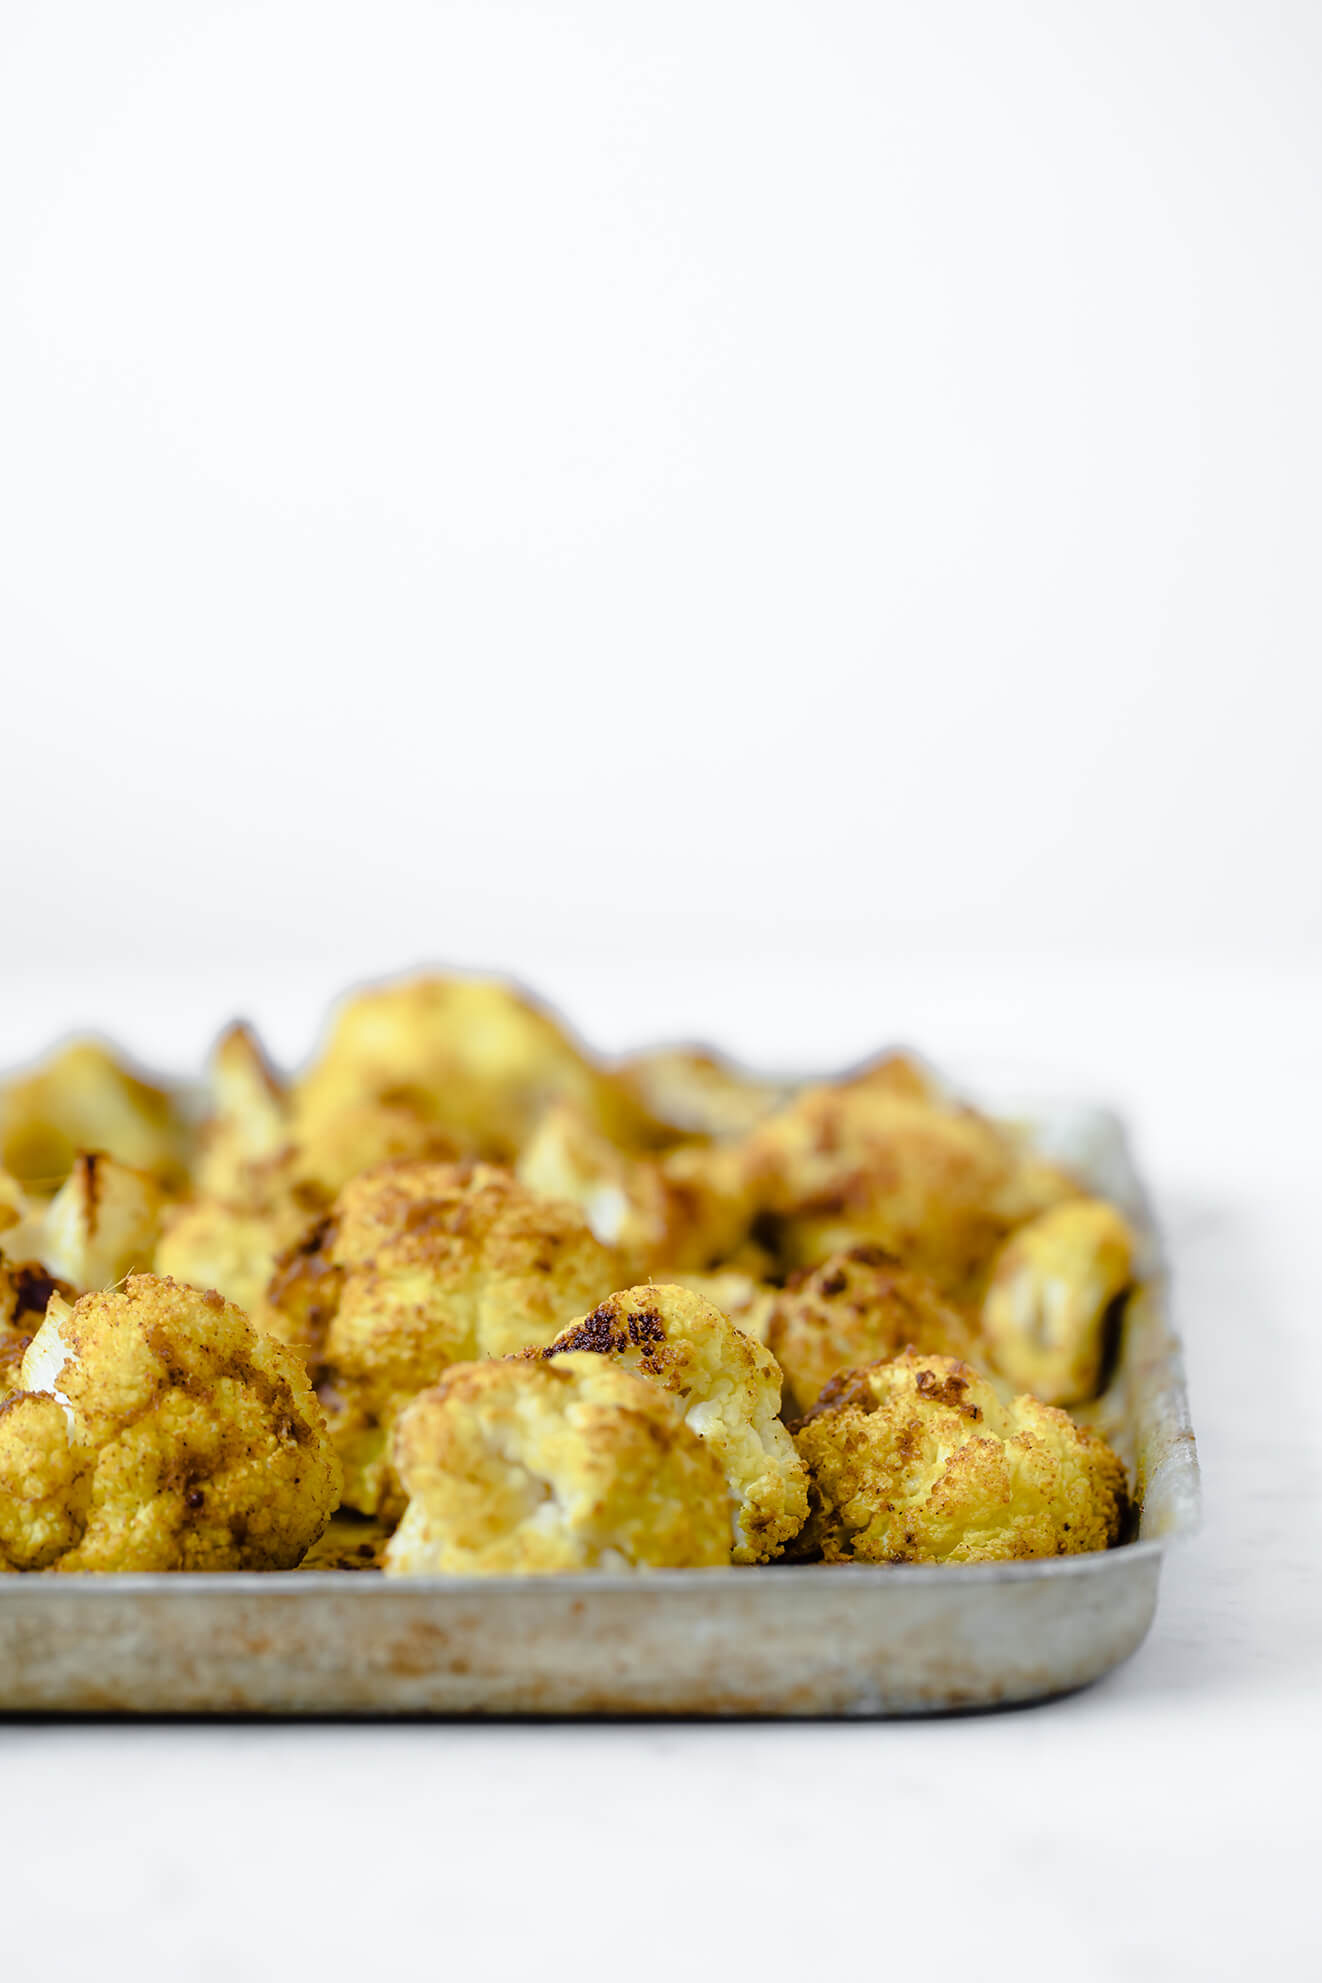 Roasted Cauliflower, Curried cauliflower, roast cauliflower recipe, Modern Food Stories, food photography